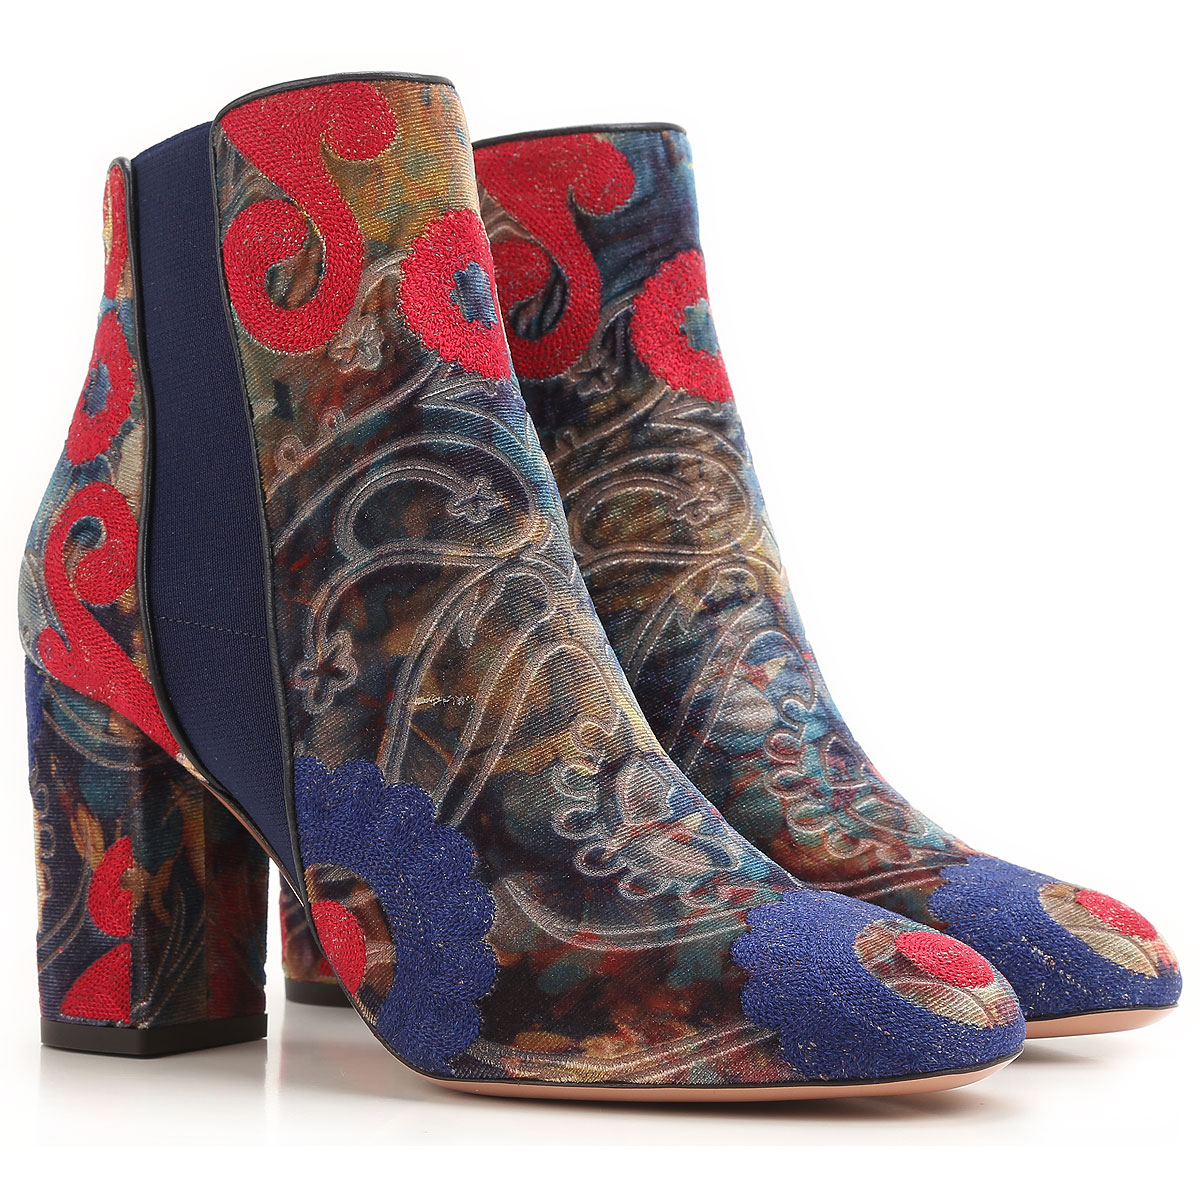 Aquazzura Boots for Women Booties On Sale in Outlet USA - GOOFASH